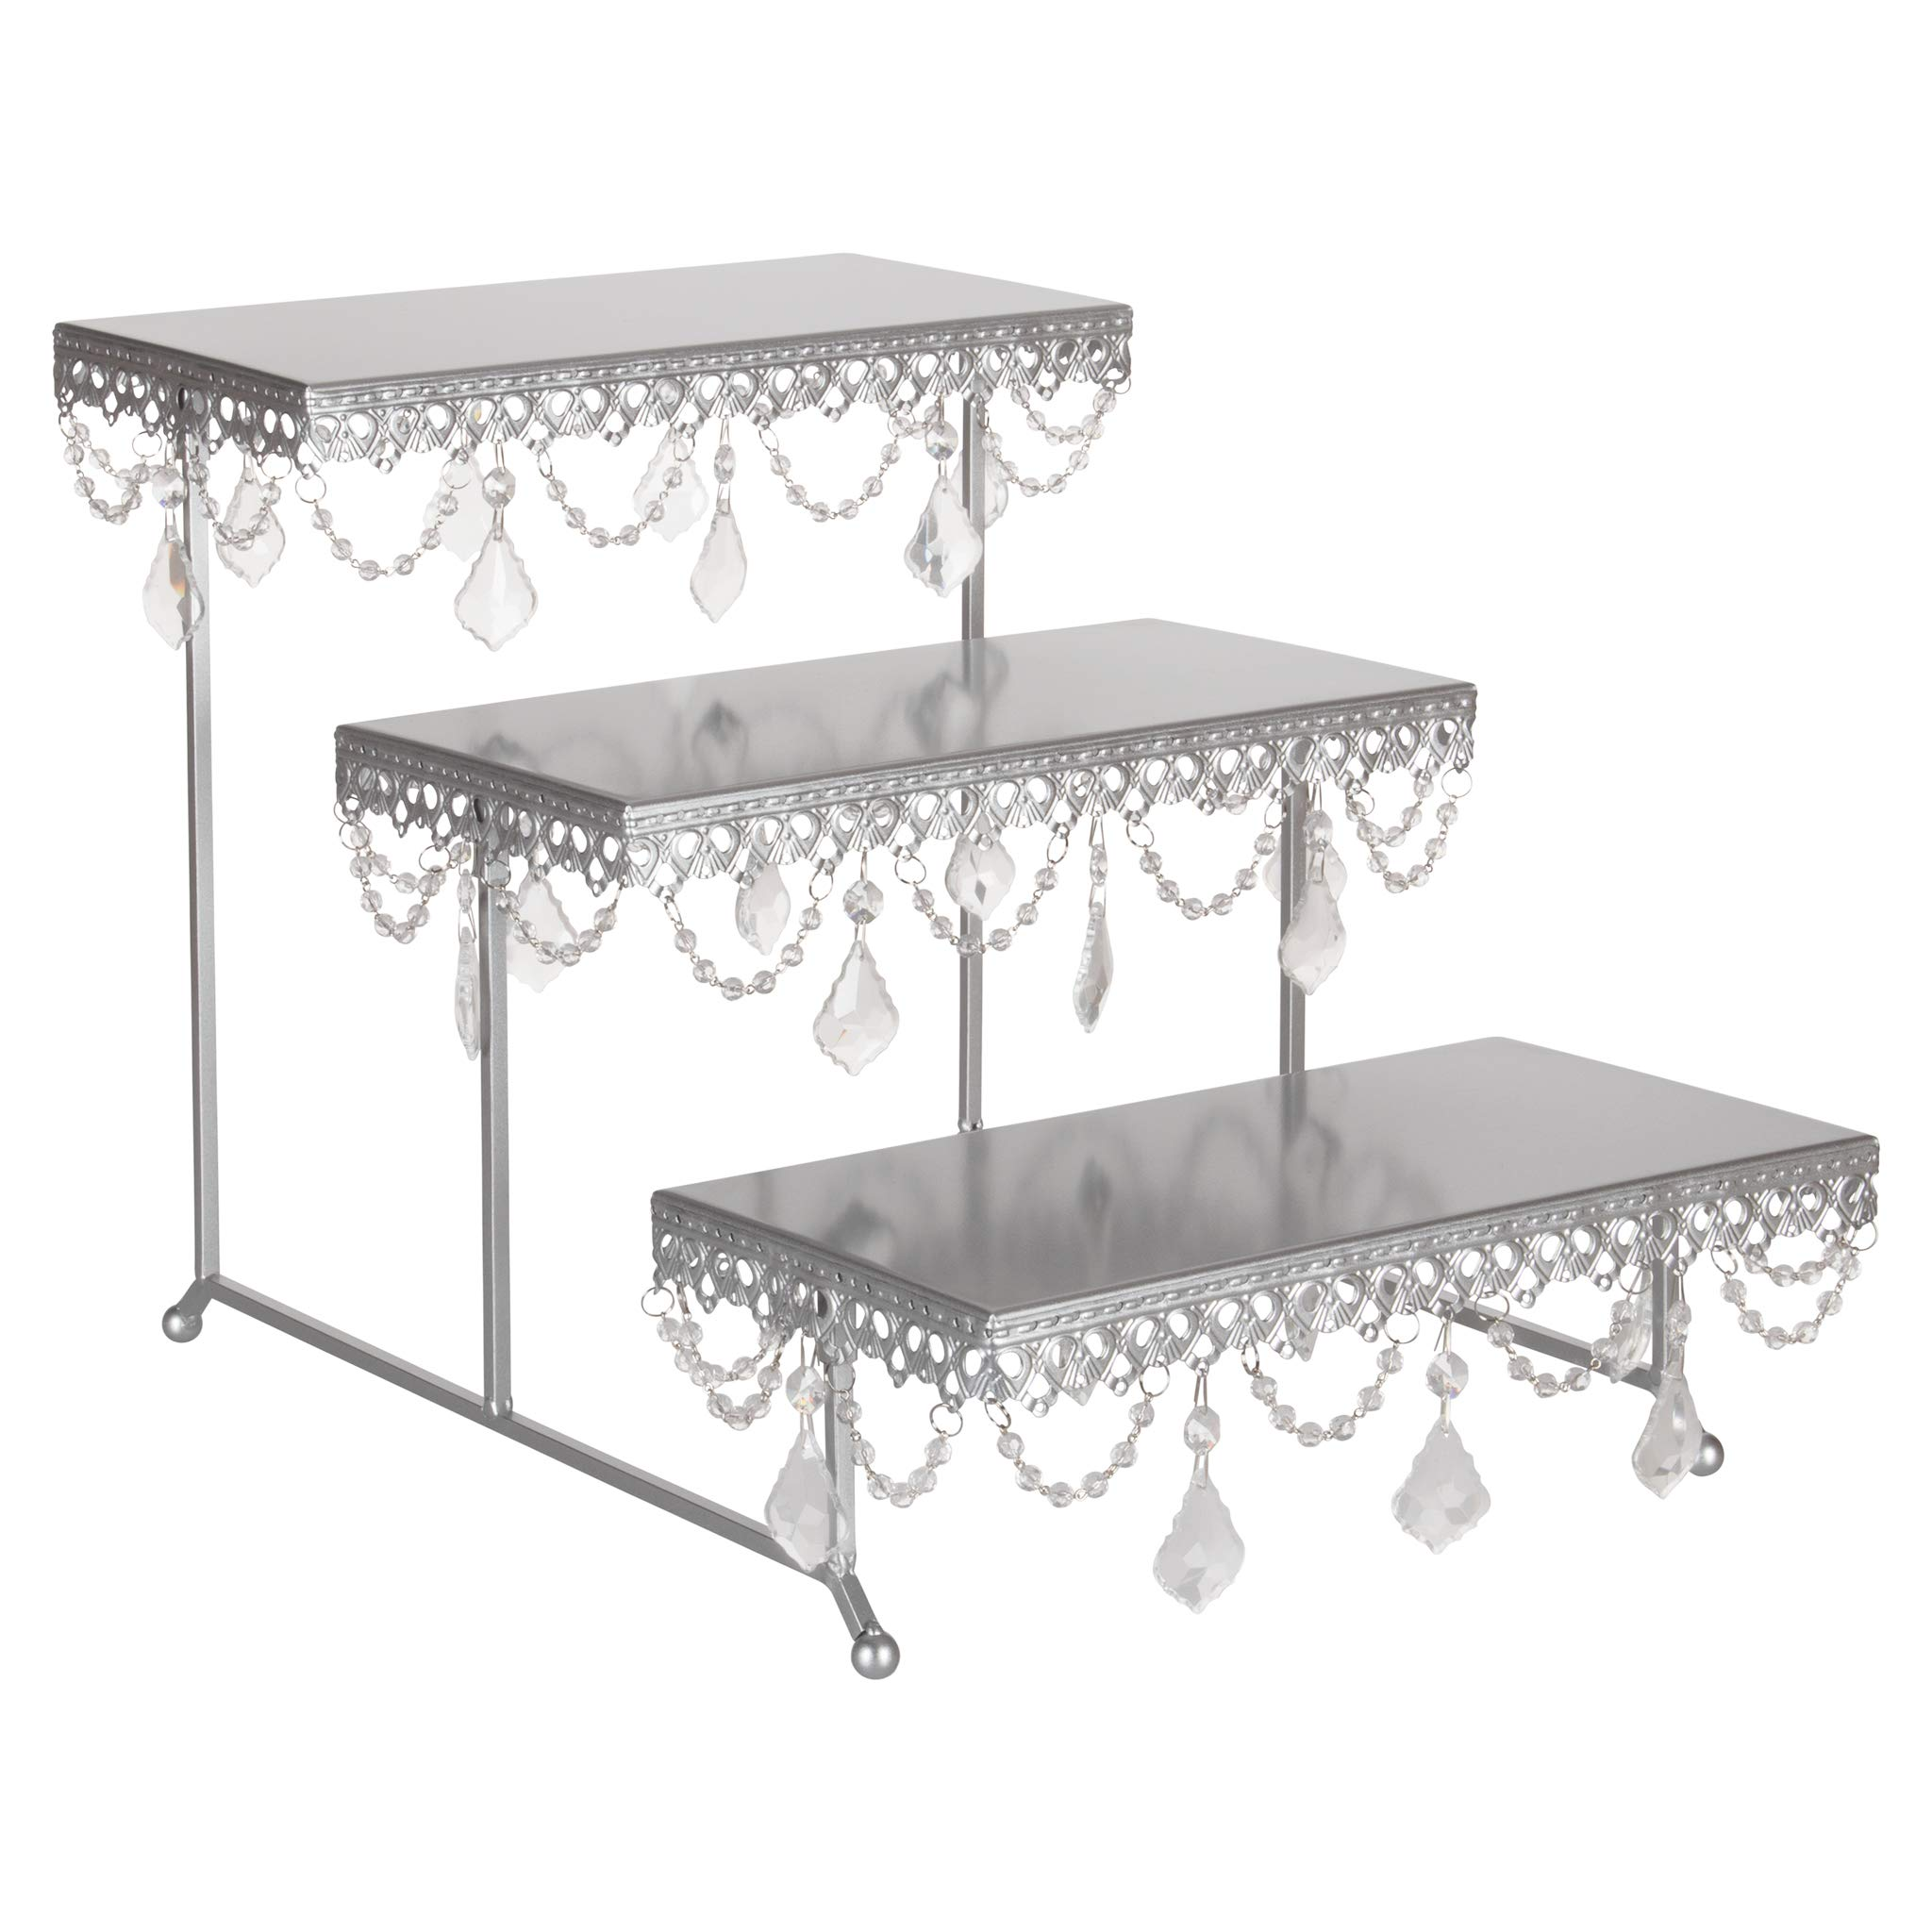 Amalfi Decor 3 Tier Dessert Cupcake Stand, Pastry Candy Cake Cookie Serving Platter for Wedding Event Birthday Party, Rectangular Metal Plate Tower Tray Holder with Crystals, Silver by Amalfi Décor